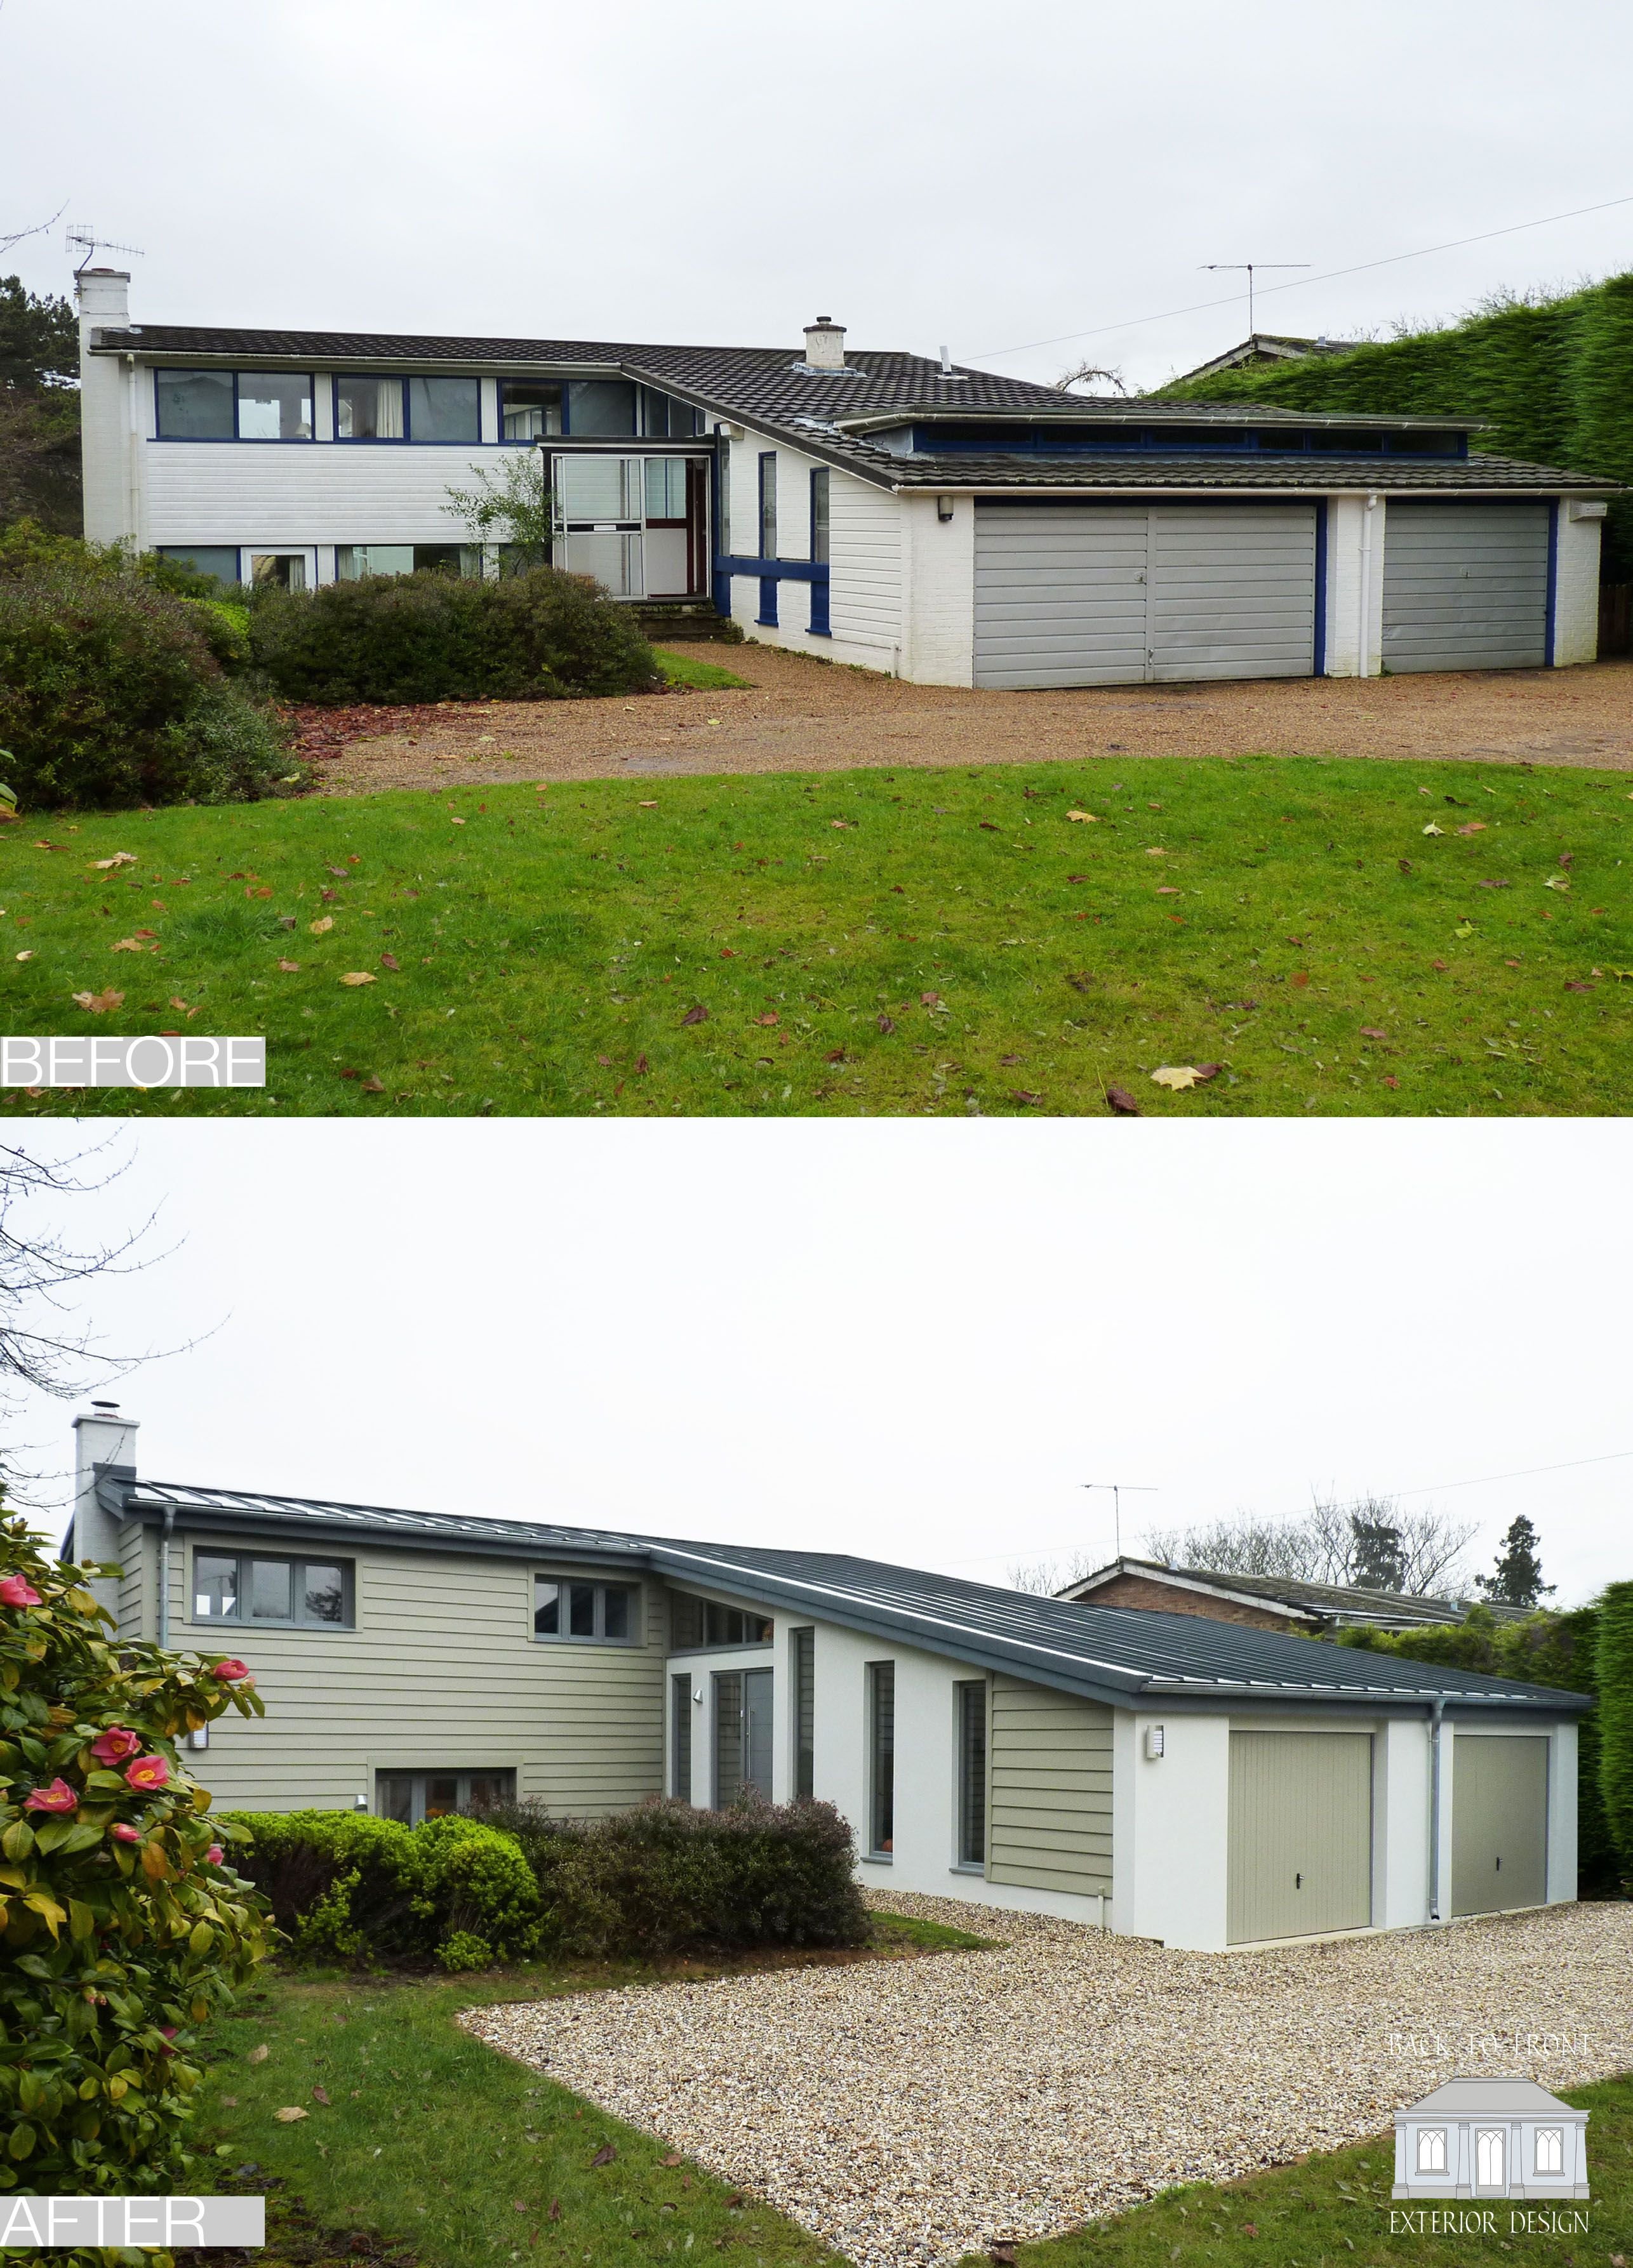 1960 S Before And After Remodelling Project In Guildford Surrey By Back To Front Exterior: Back To Front Exterior Design 1960's Before And After Modern Remodel